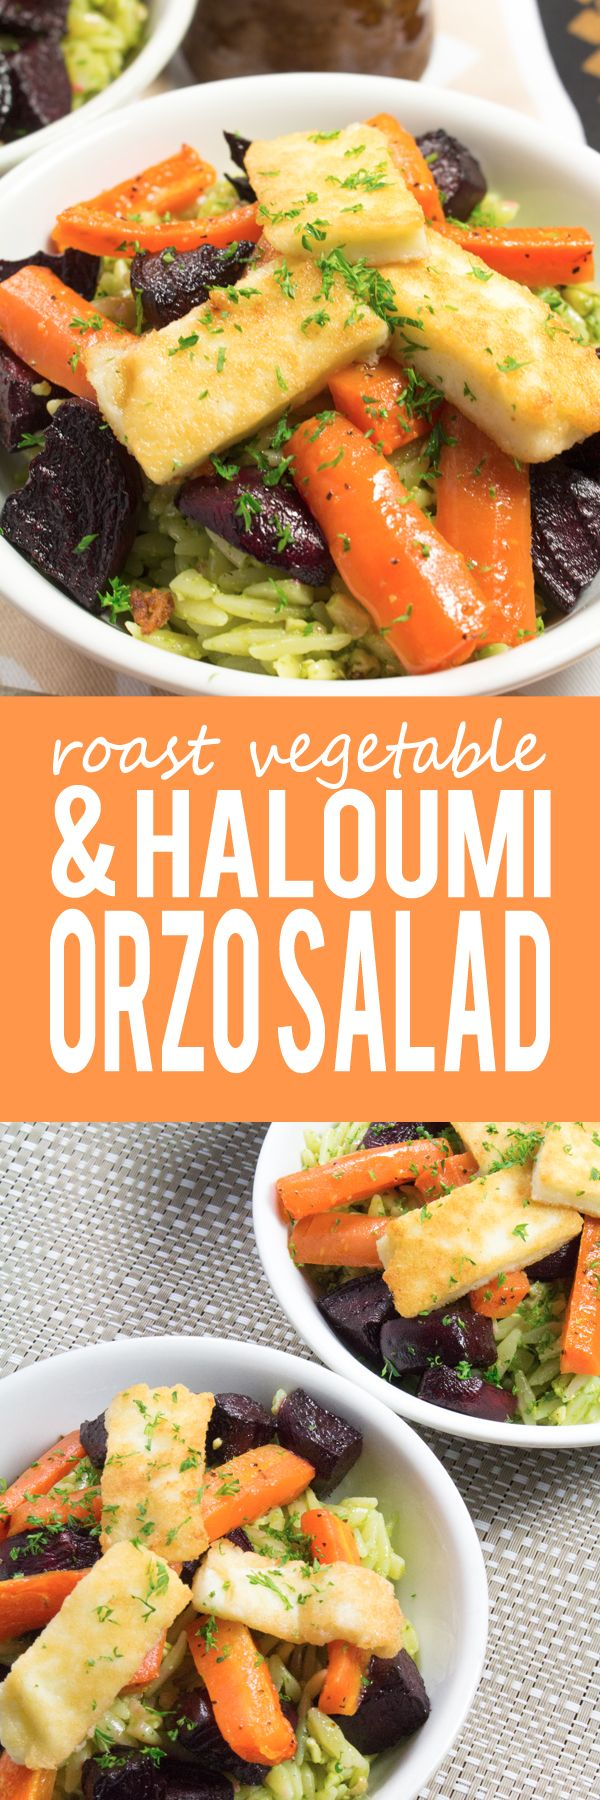 Roast Vegetable and Haloumi Orzo Pasta Salad - This super easy and healthy vegetarian salad is exploding with amazing flavors!